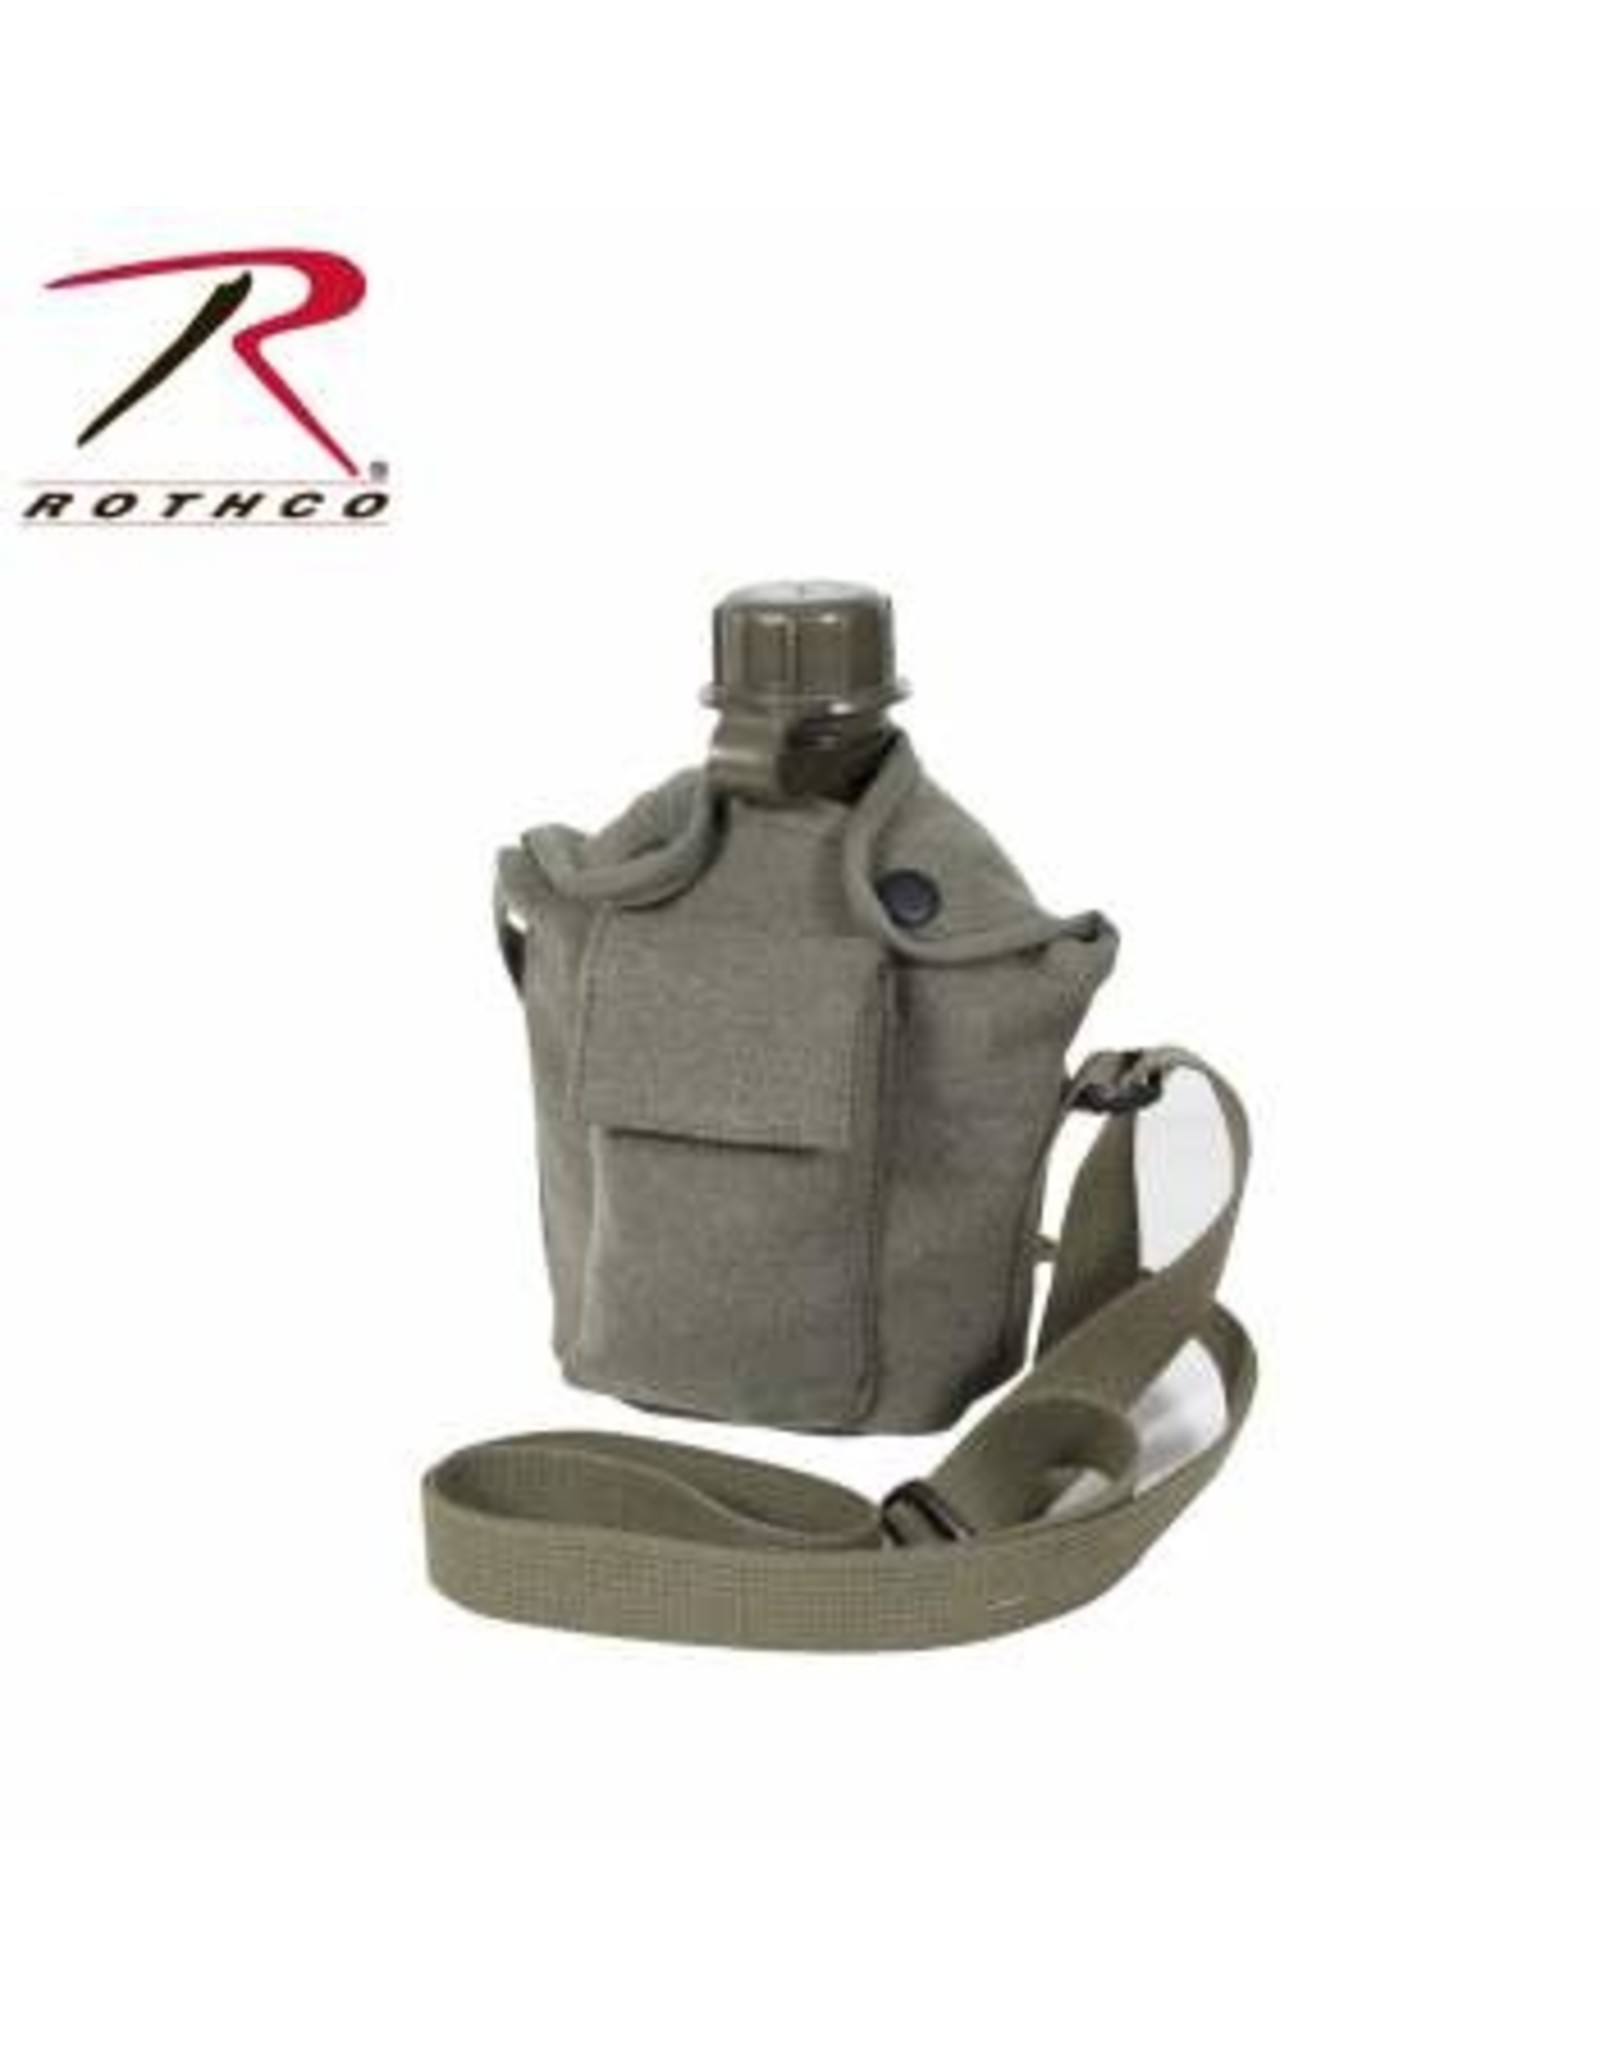 ROTHCO VINTAGE CANTEEN CARRY-ALL